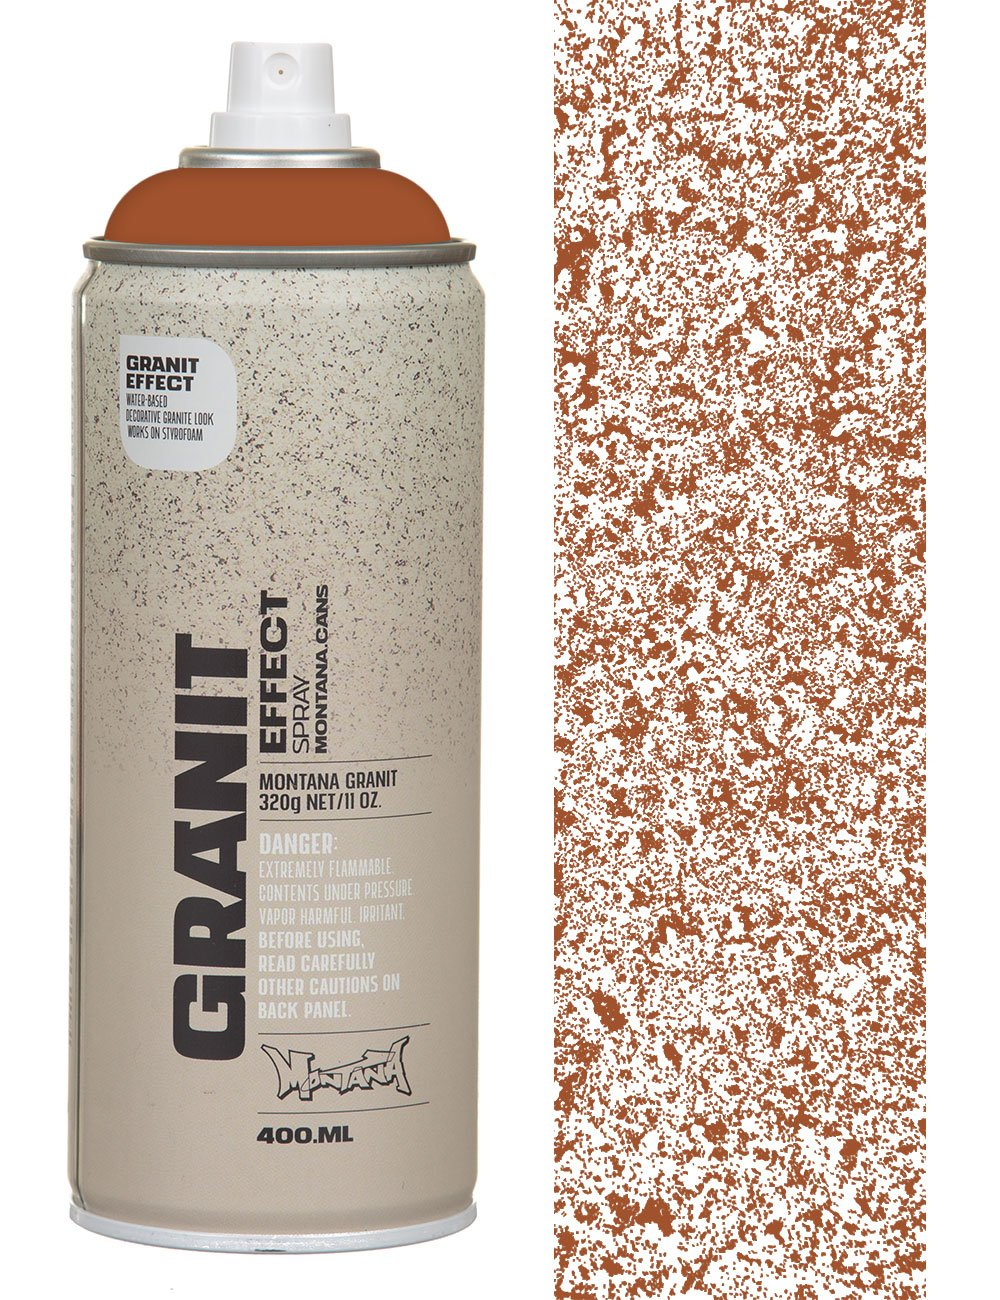 Montana gold brown granite effect spray paint 400ml spray paint supplies from iconsume uk Spray paint supplies